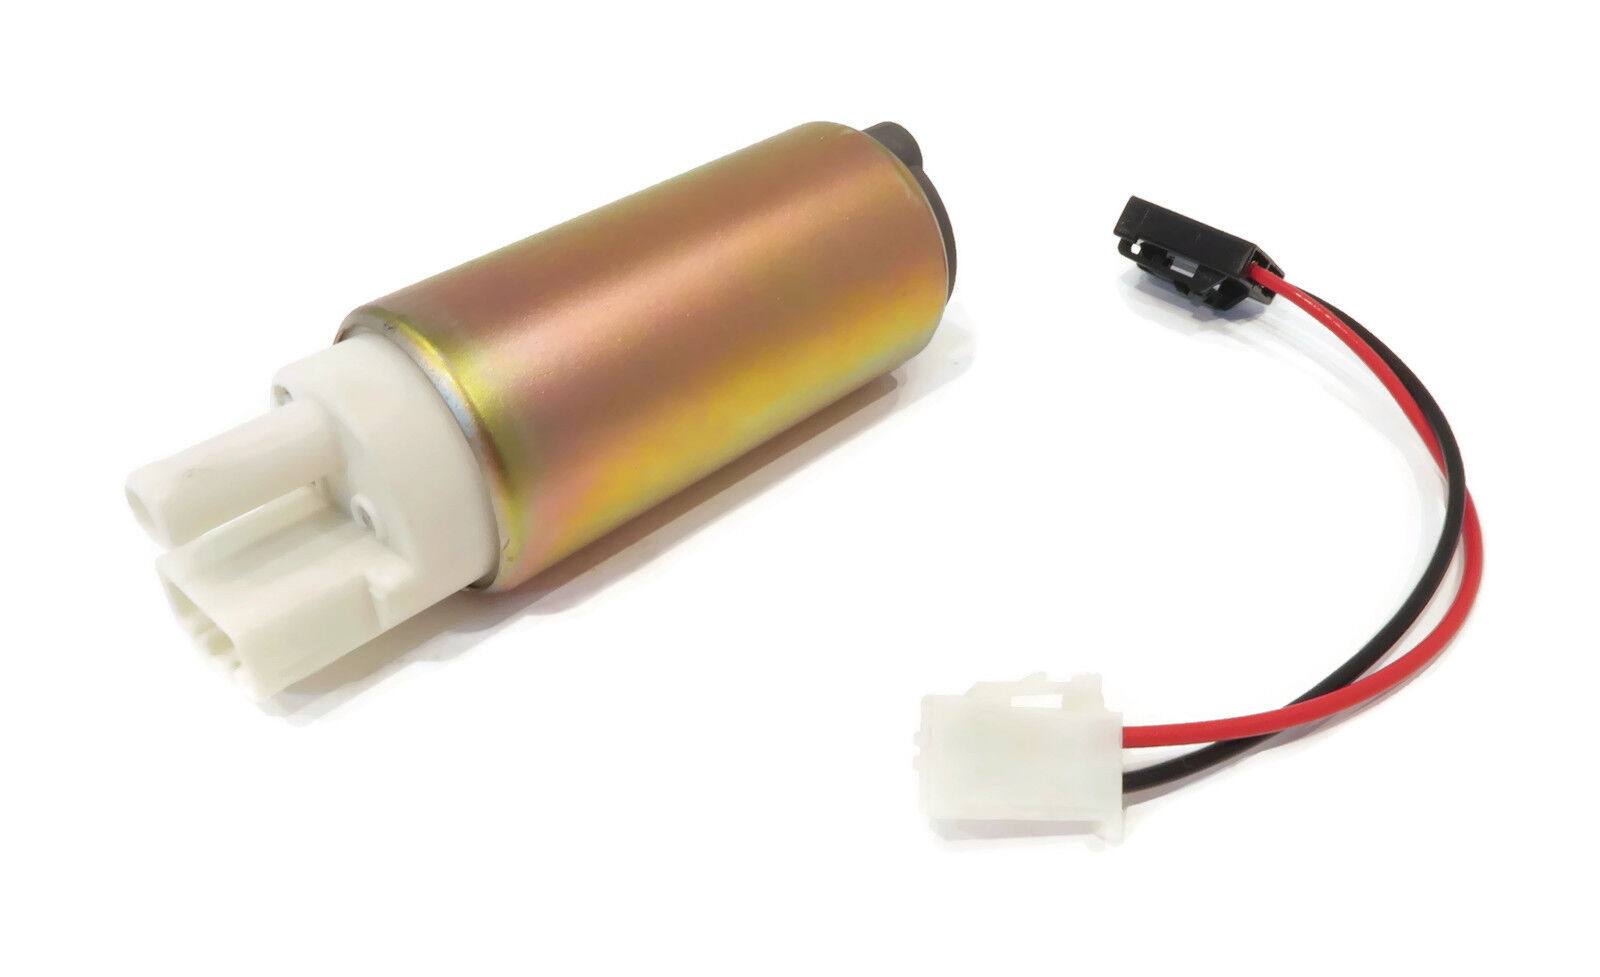 Fuel Pump for Suzuki 15200-93J01,15200-98J00 High Pressure Outboard EFI Engines